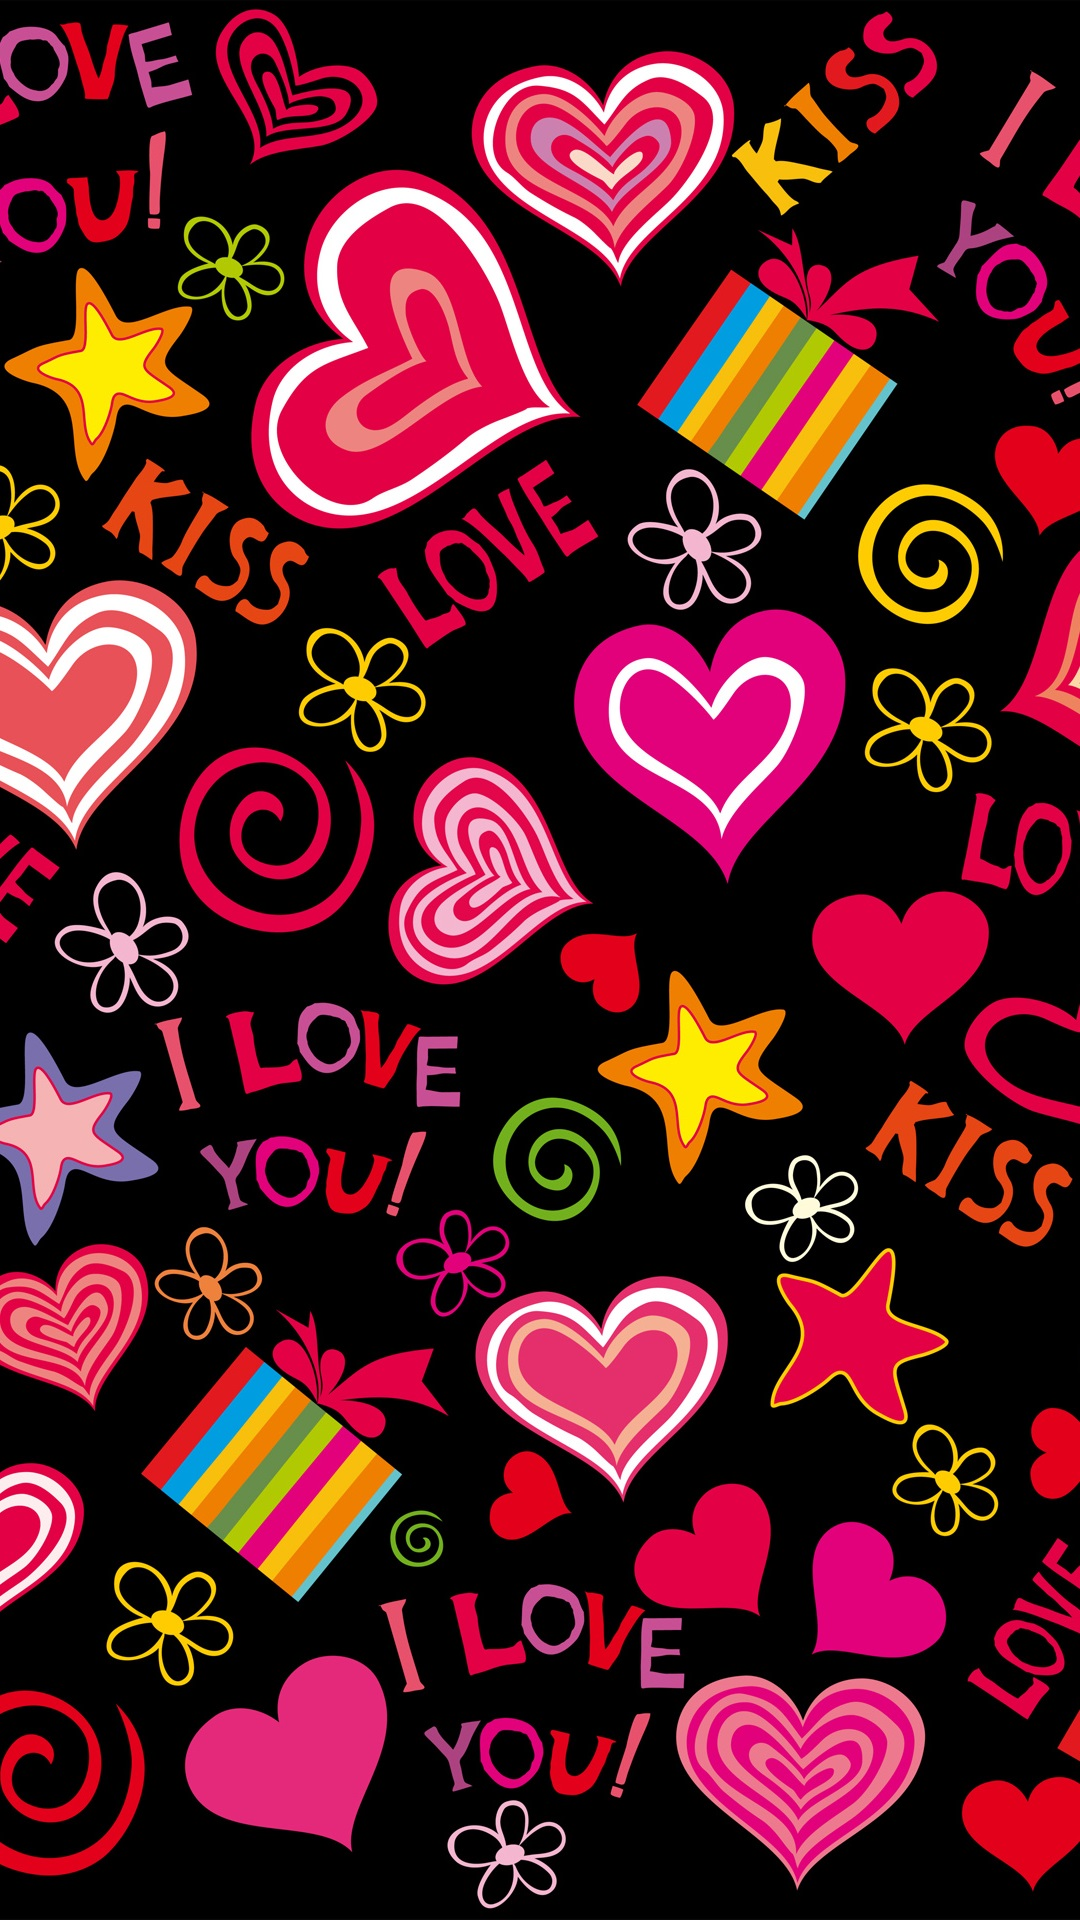 No Love Iphone Wallpaper : colorful love hearts, sweet, vector, romantic iPhone ...